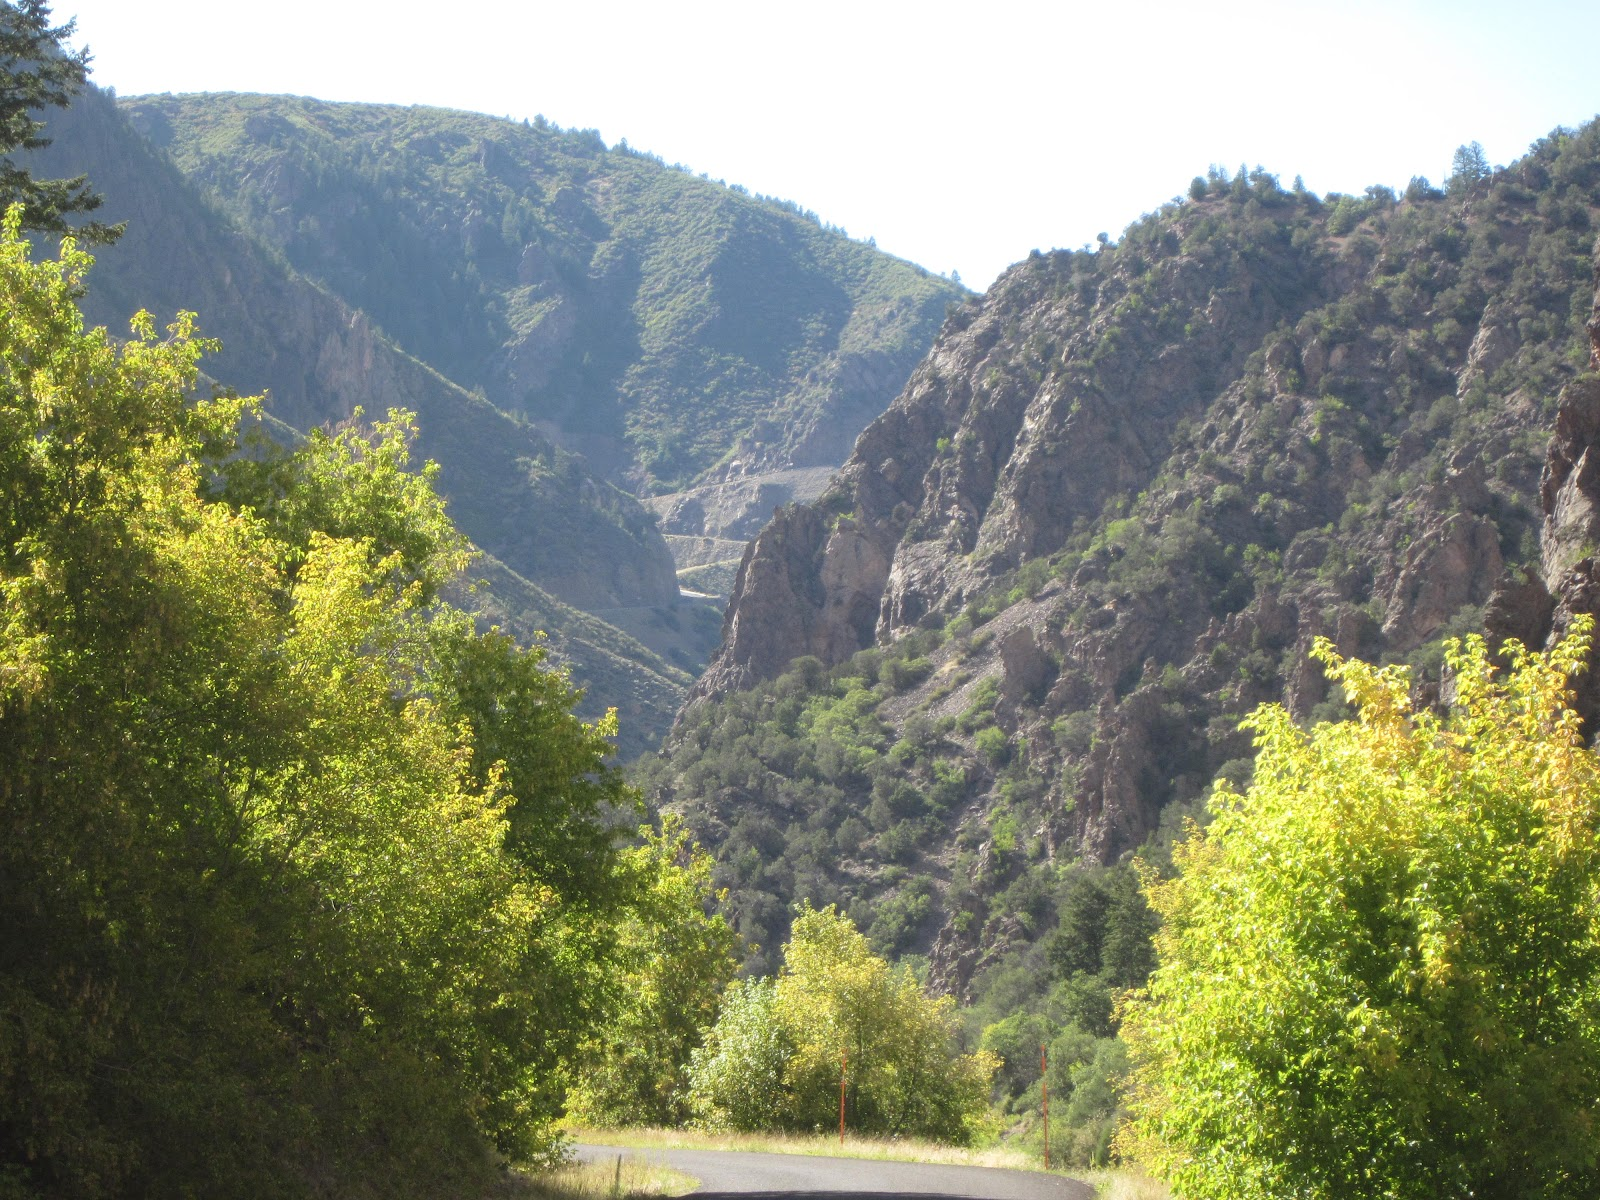 Climbing East Portal by bike - view of canyon and road cut into mountain.